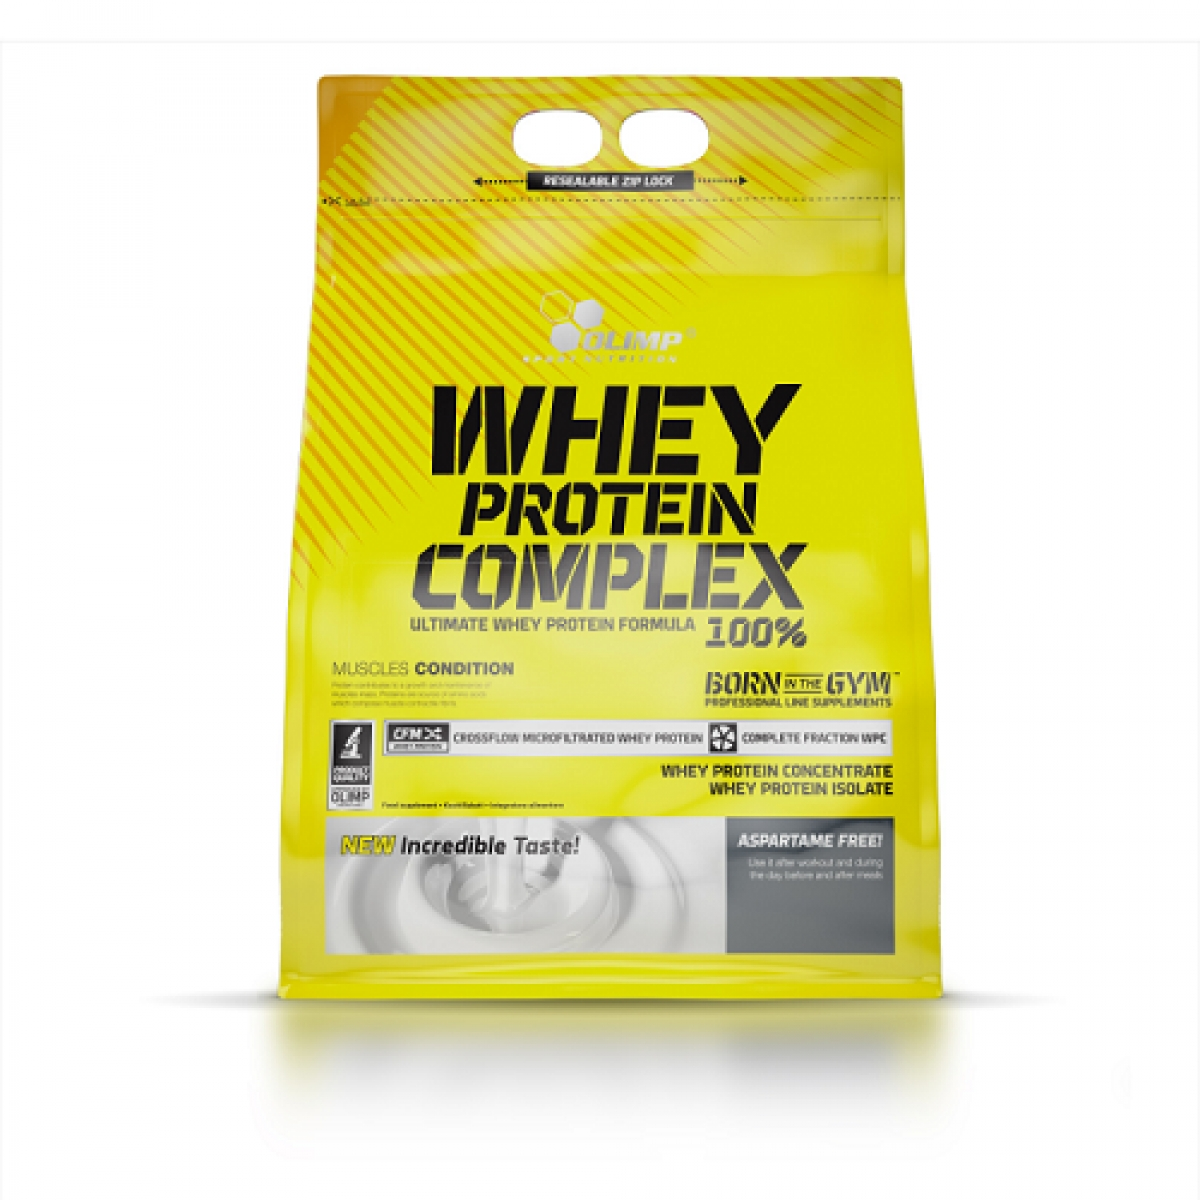 WHEY PROTEIN COMPLEX, 2270 Г